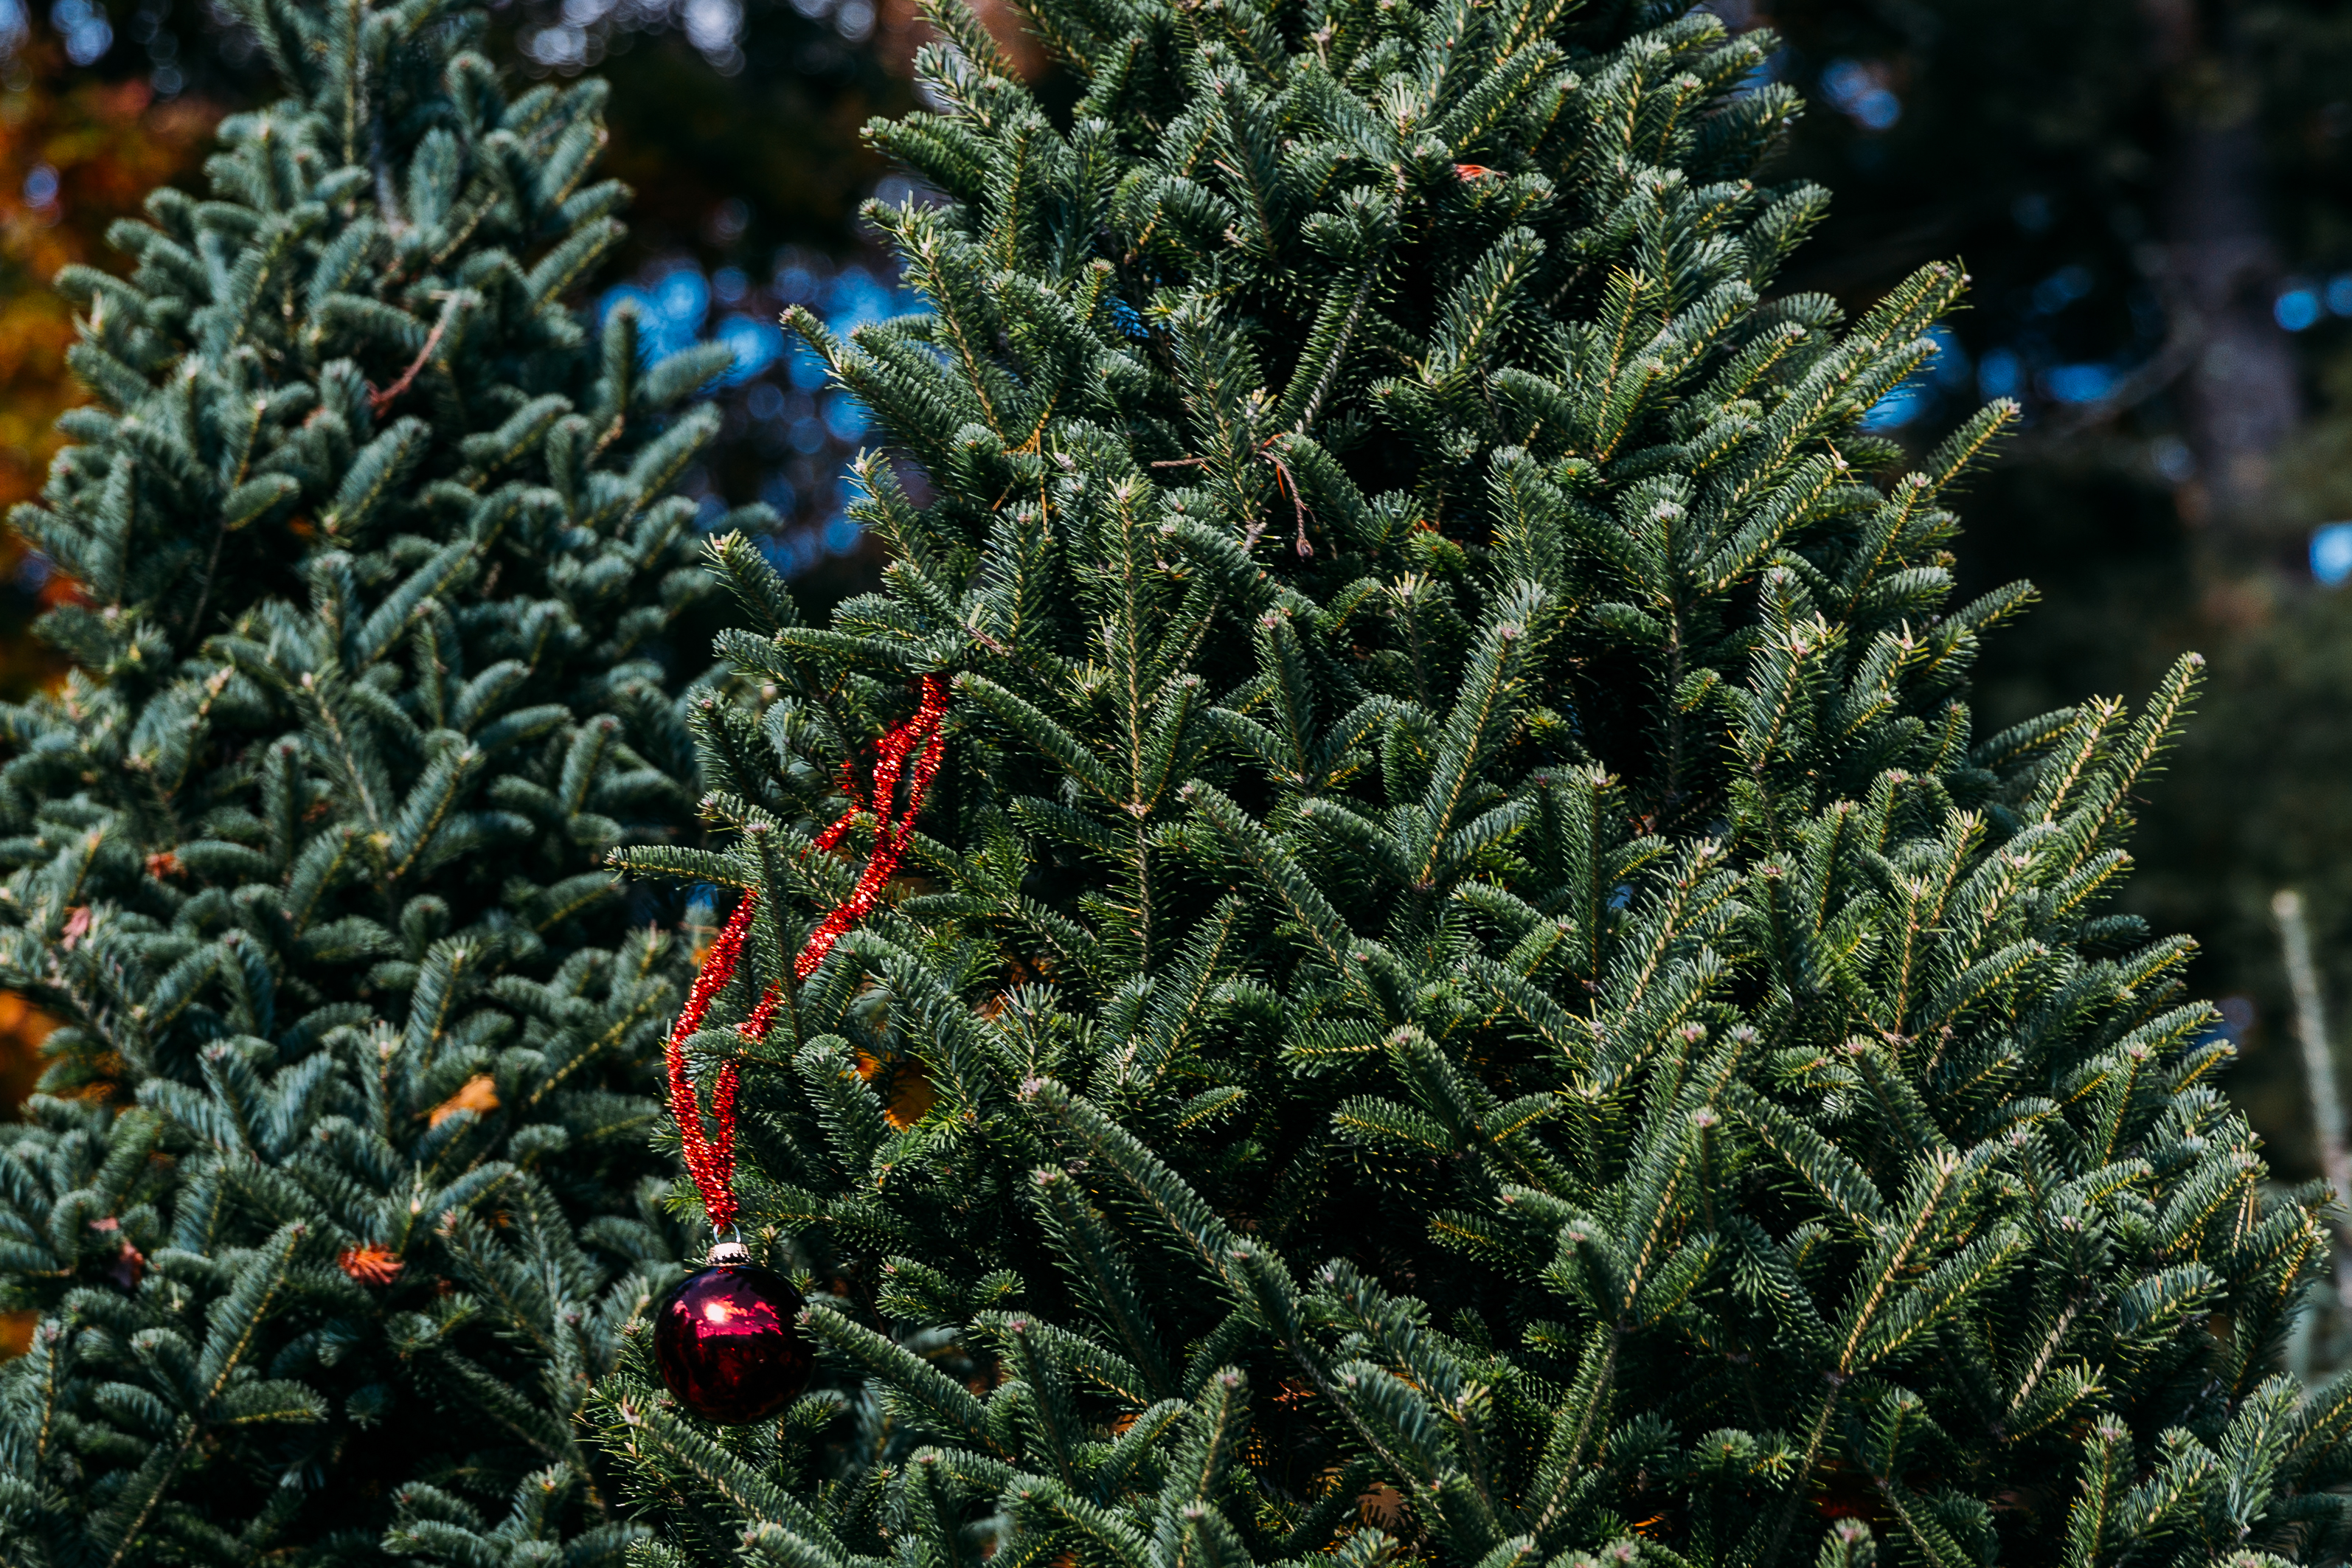 Red ornament on bare Christmas tree